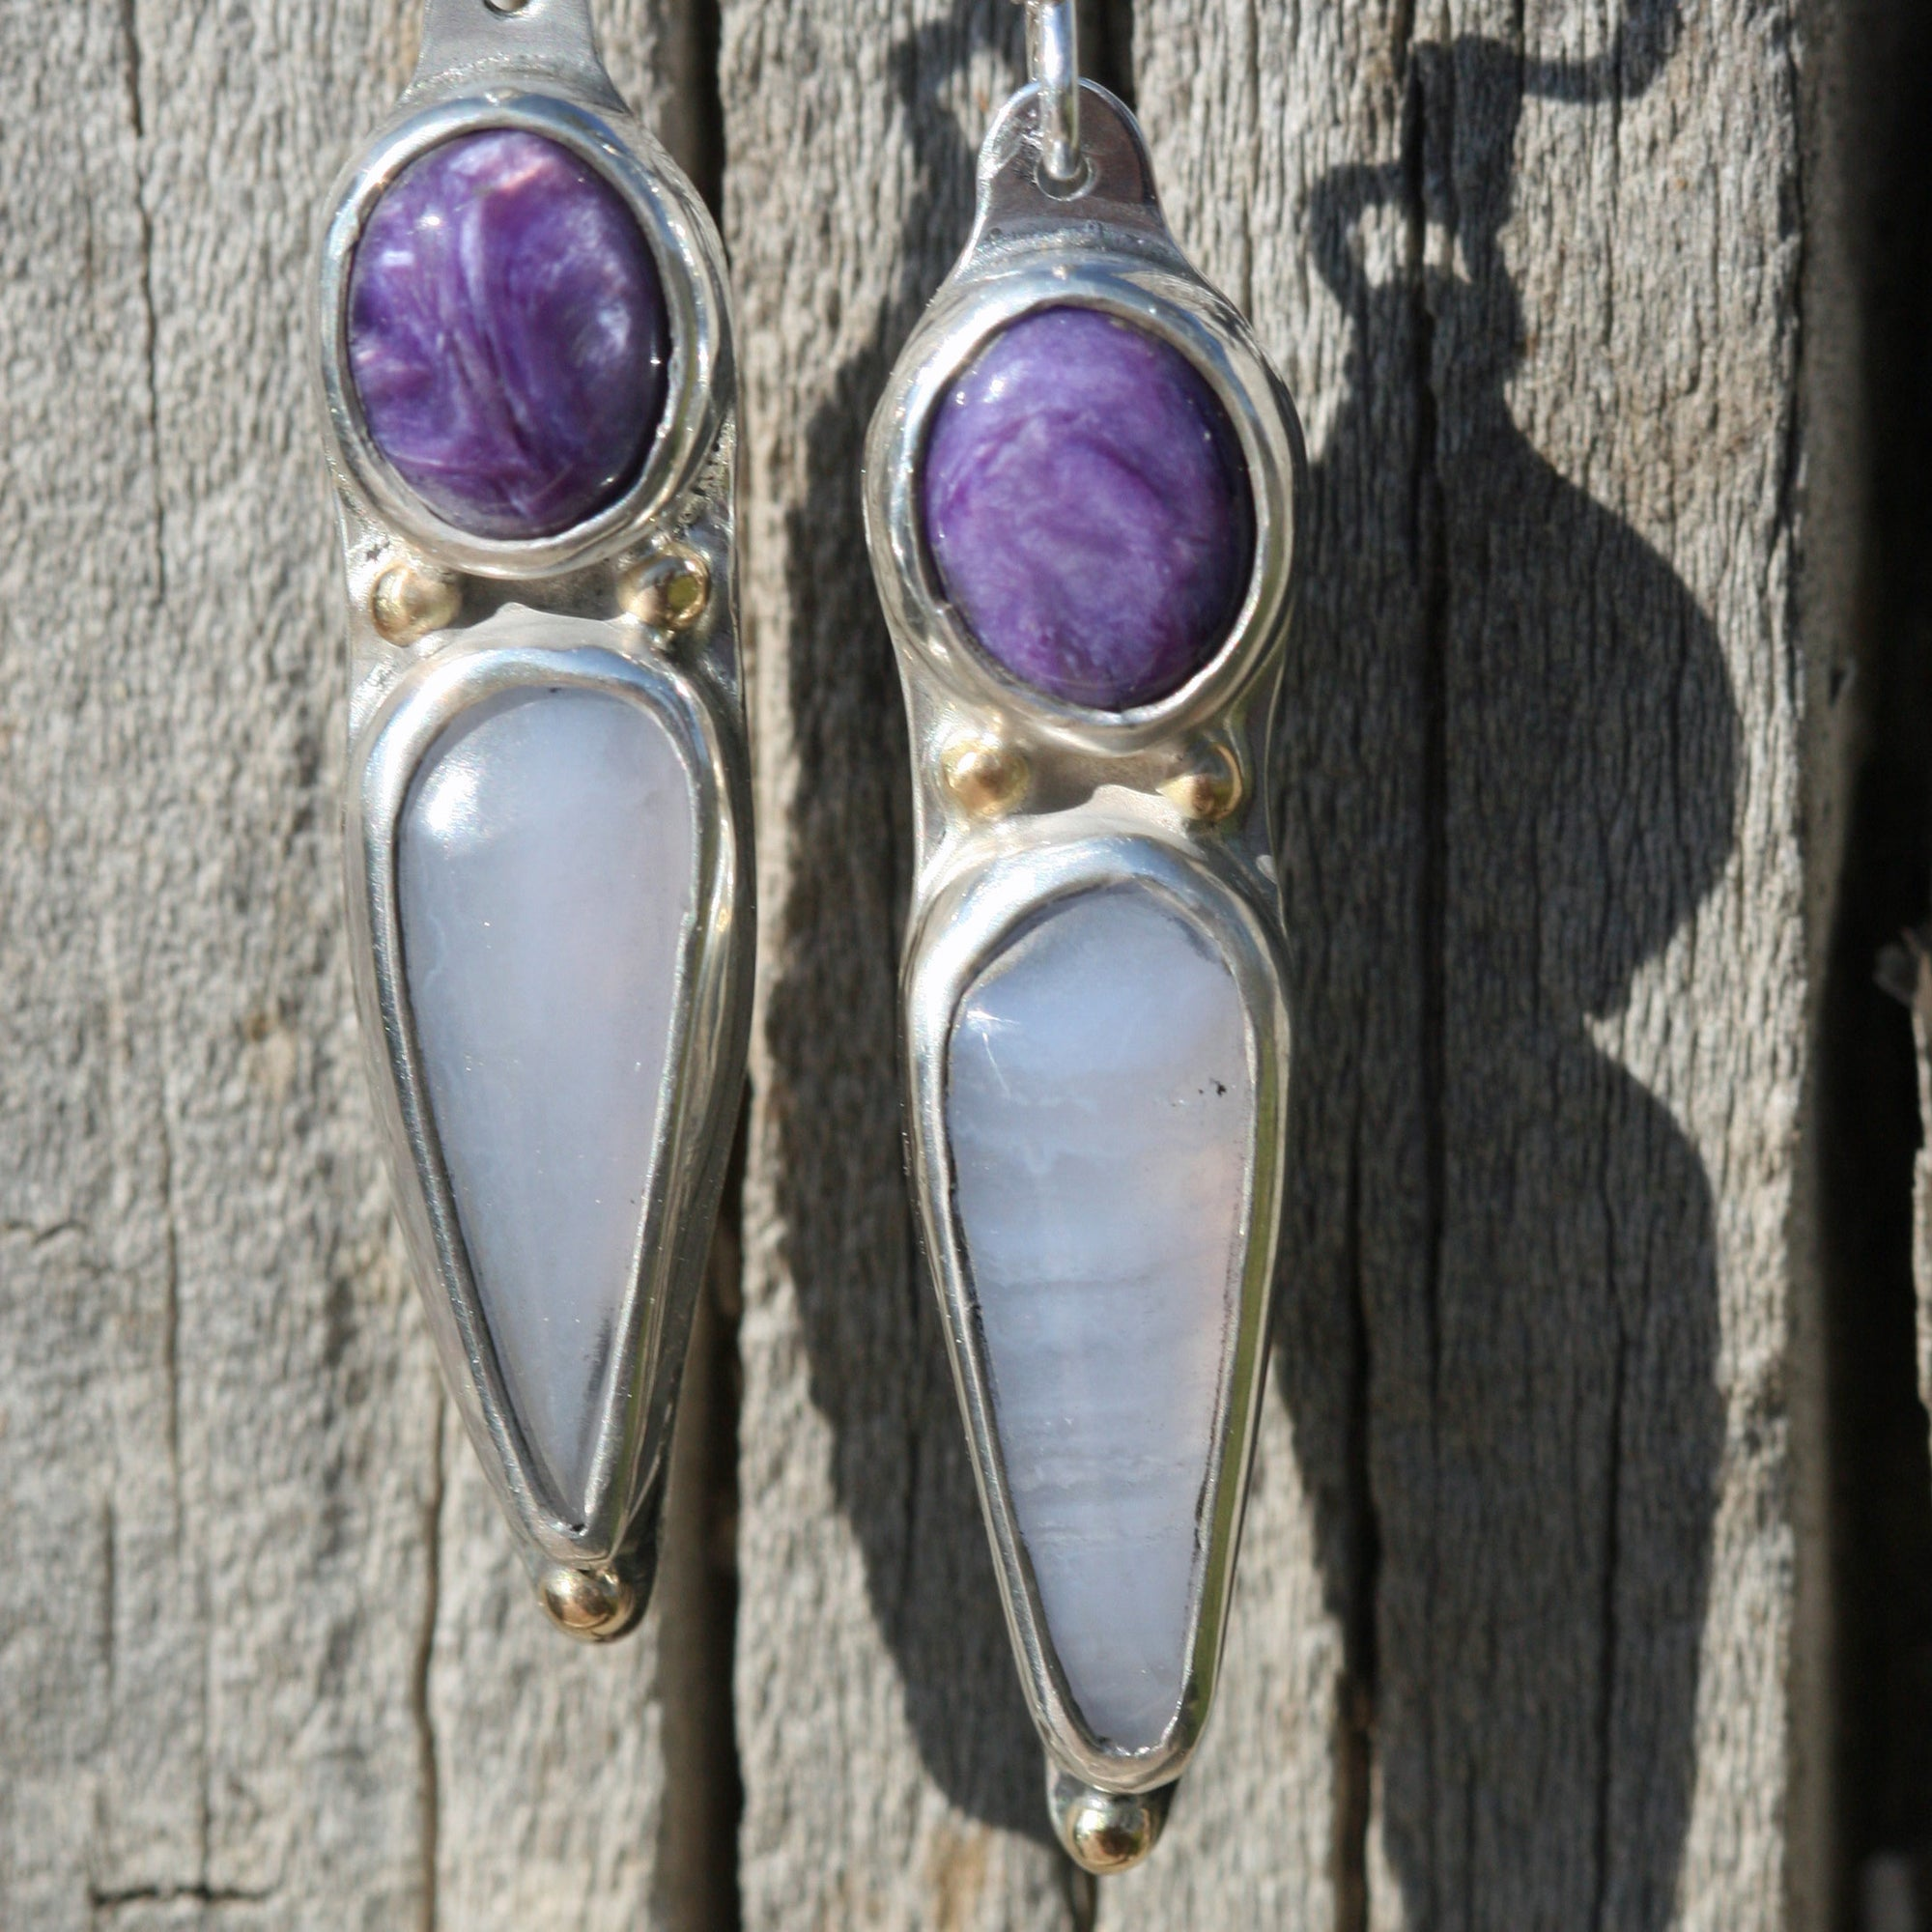 Blue Lace Agate and Charoite  Earrings - Boho Gypsy, Hippie Chic, Spring, Soothing